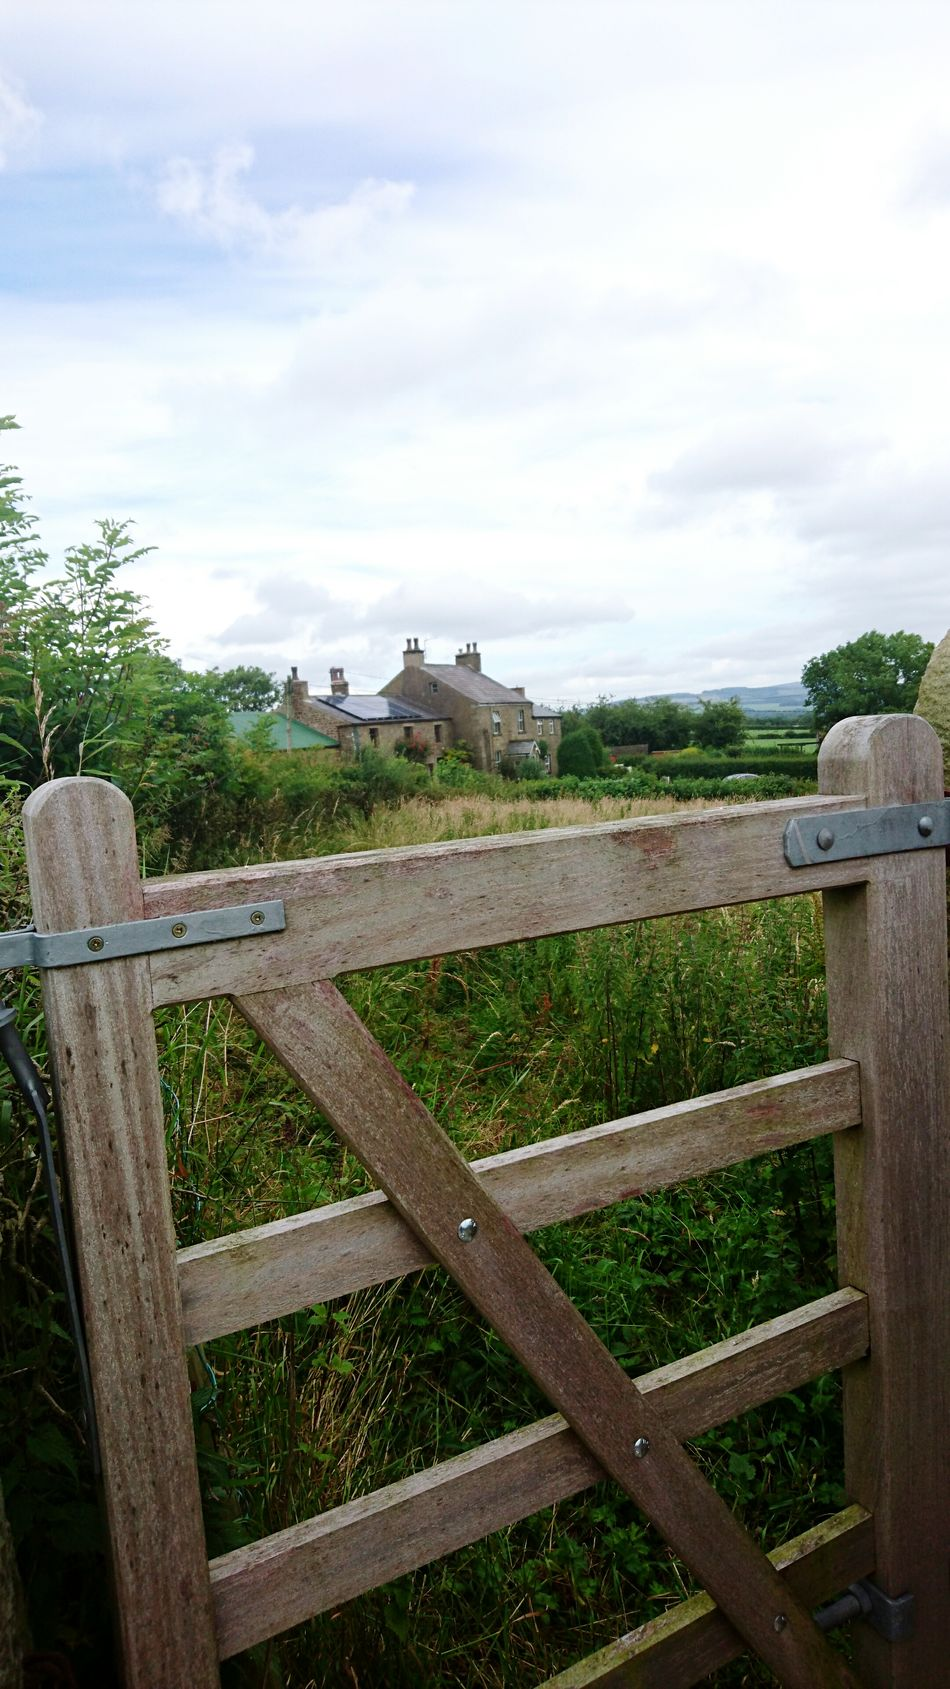 Gate Country Life Countryside Village Life Green Away From It All Tranquil Scene Peace And Quiet Fields In The Distance Check This Out Taking Photos Hello World